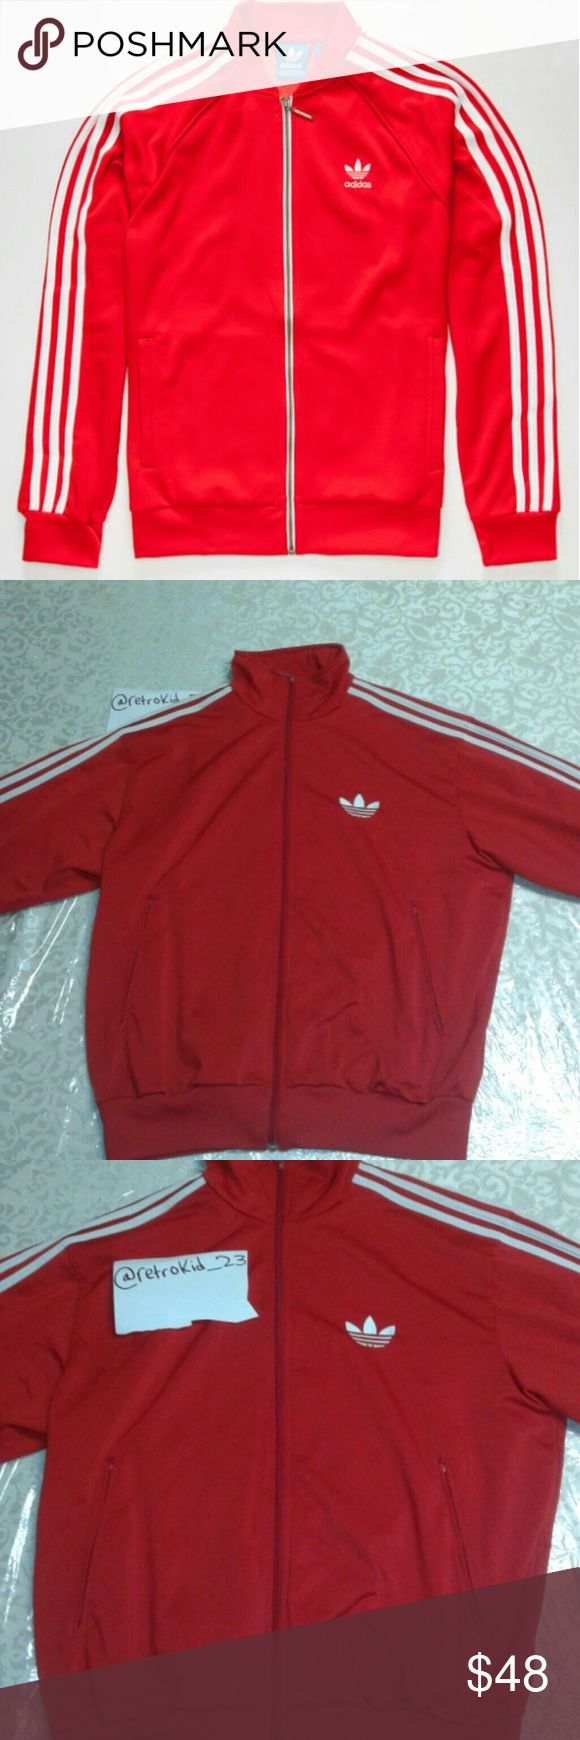 Adidas superstar red tracksuit Barley worn 8/10 Adidas Jackets & Coats Windbreakers